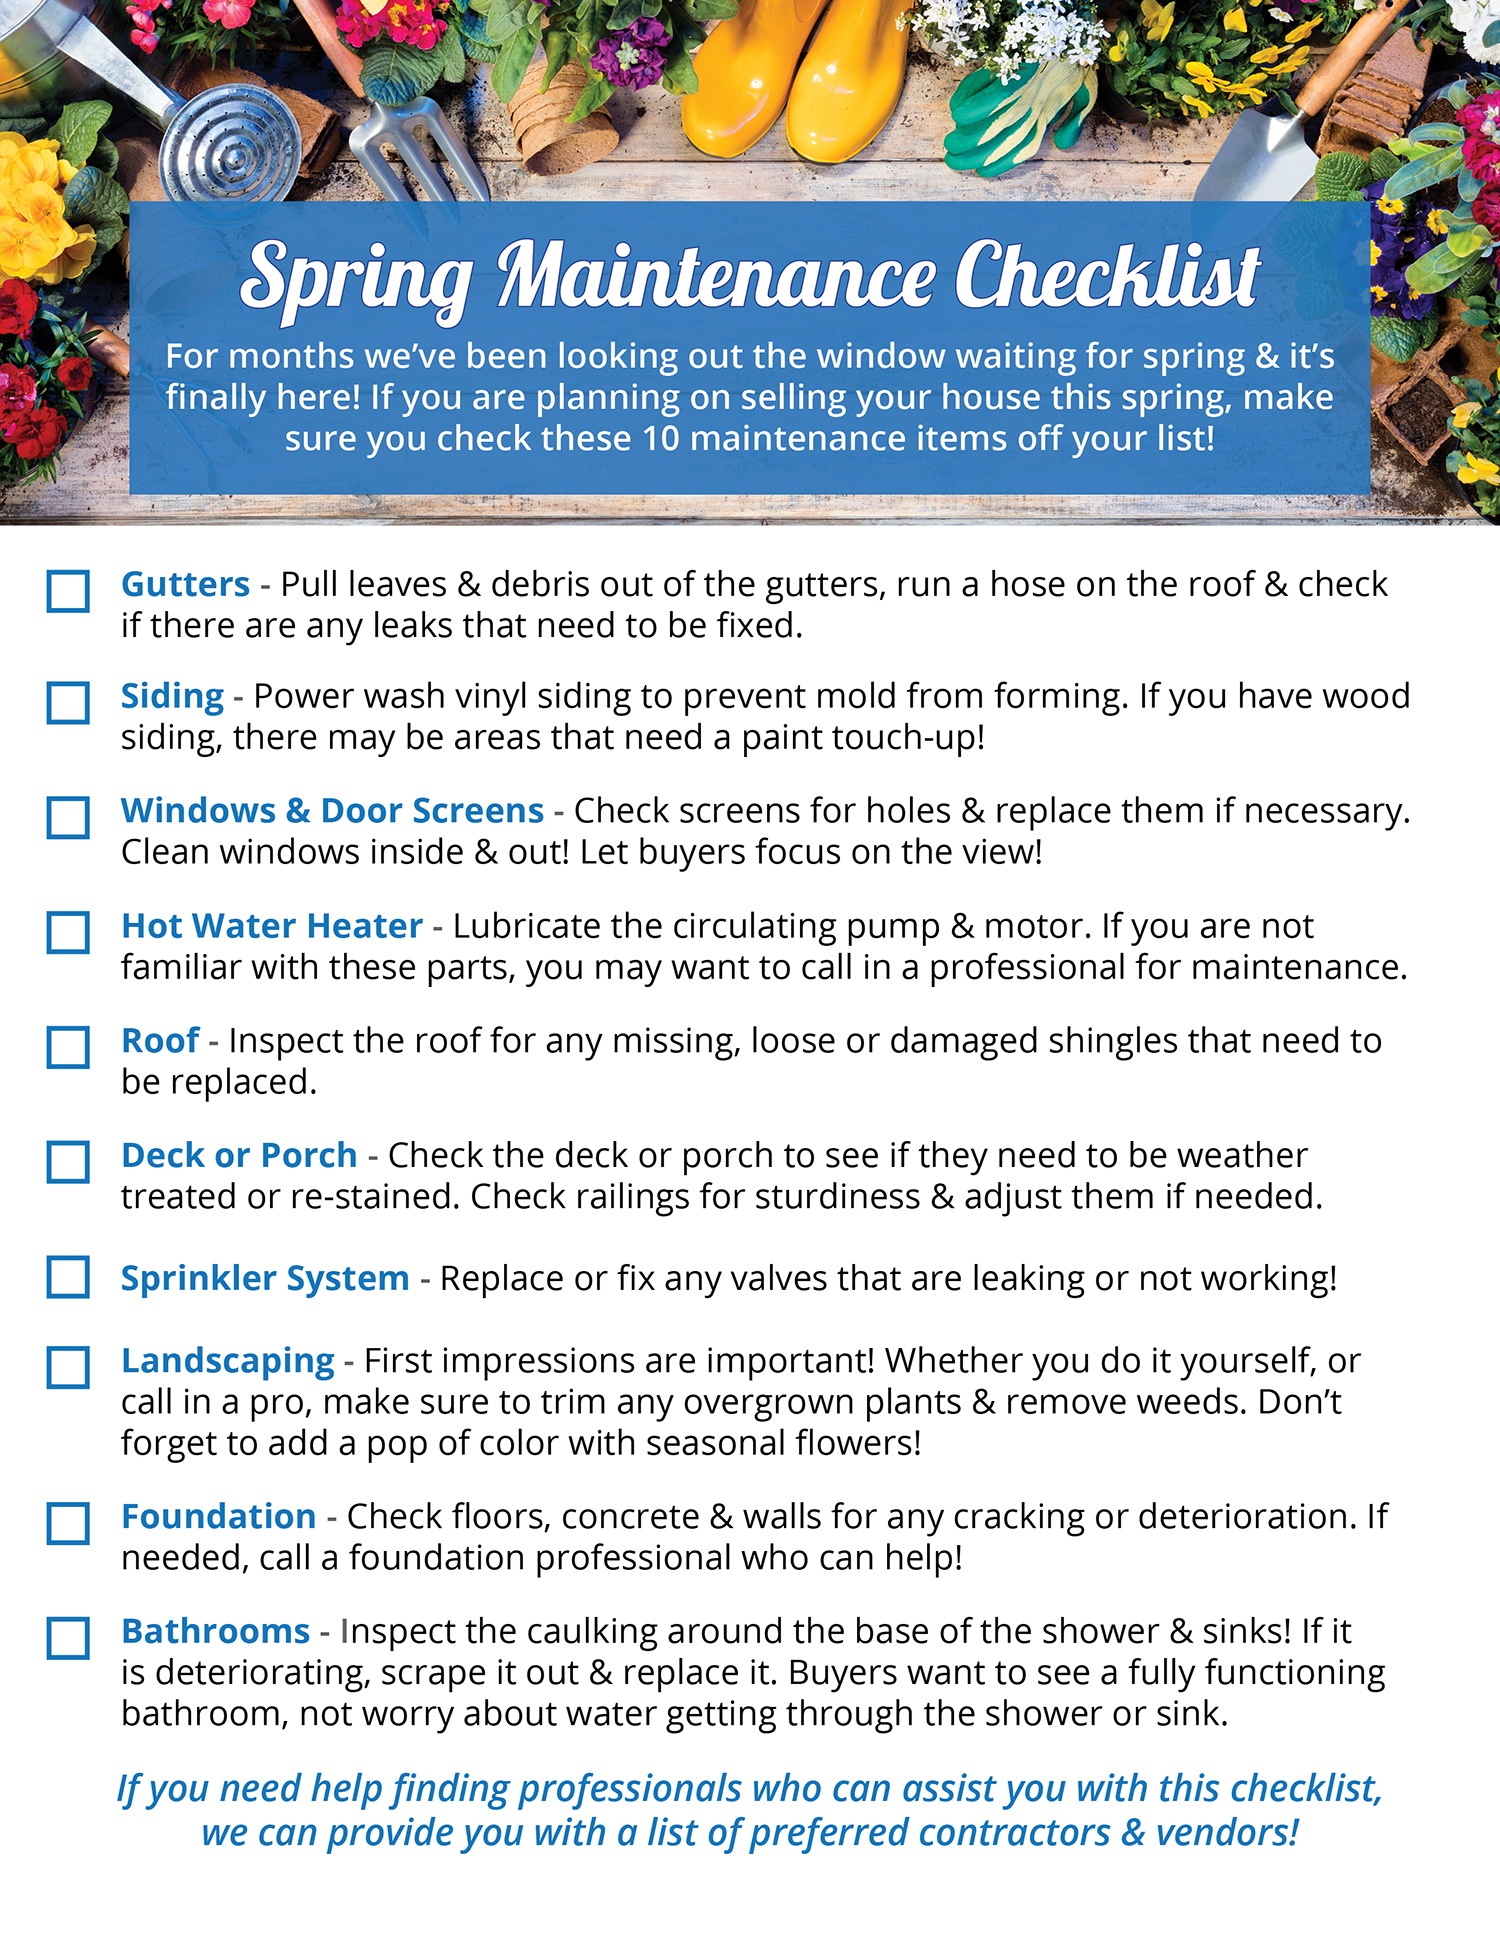 Your Home's Spring Maintenance Checklist [INFOGRAPHIC] | Simplifying The Market